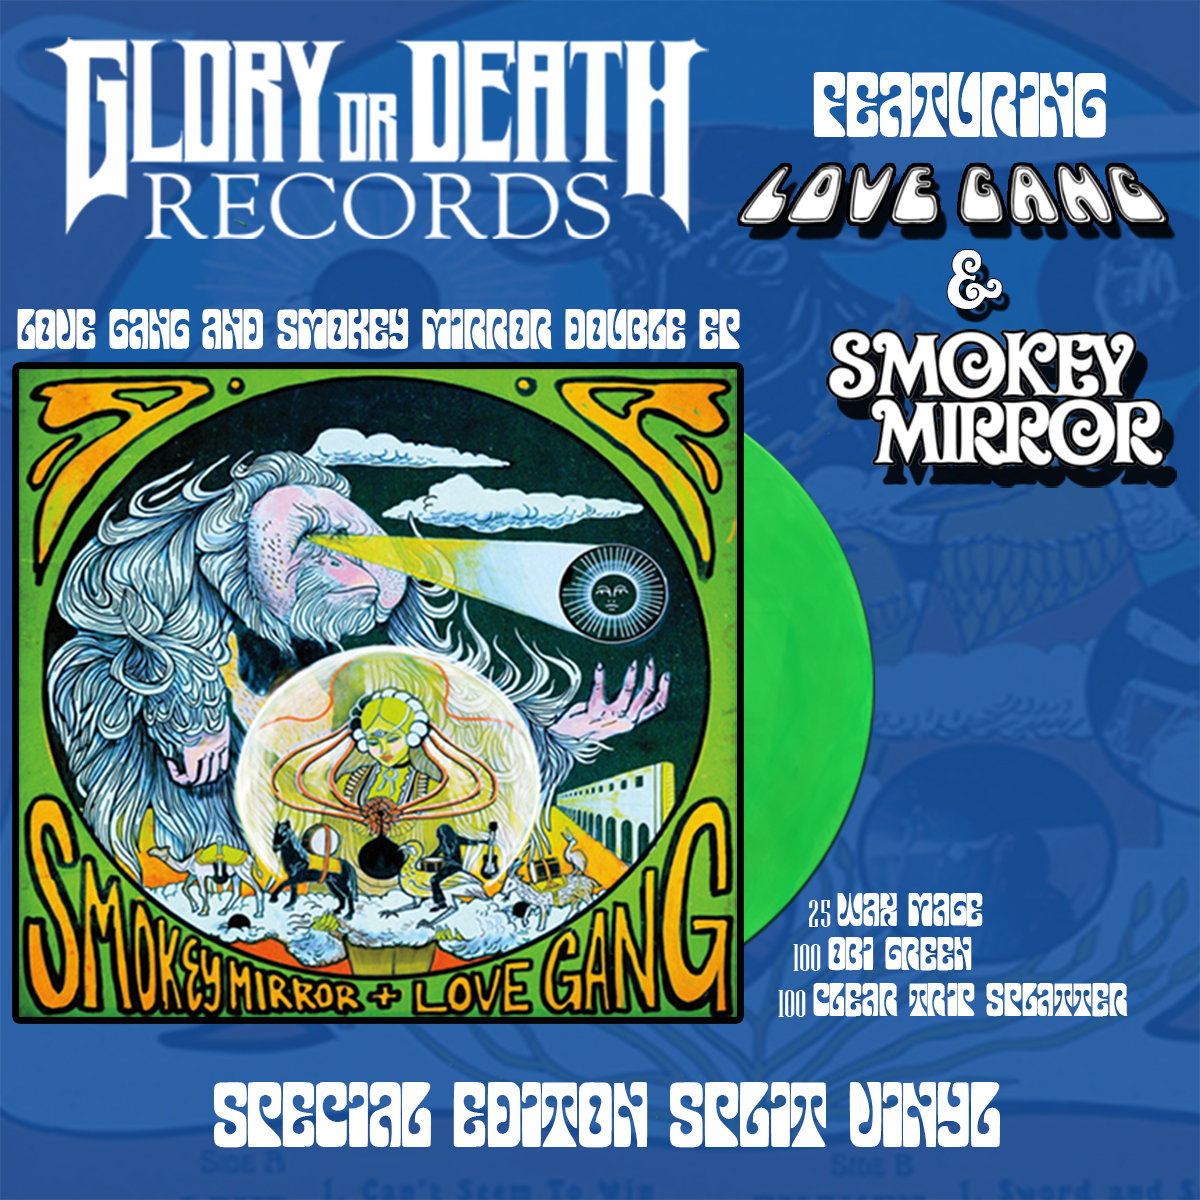 LOVE GANG & SMOKEY MIRROR DOUBLE EP | Glory or Death Records